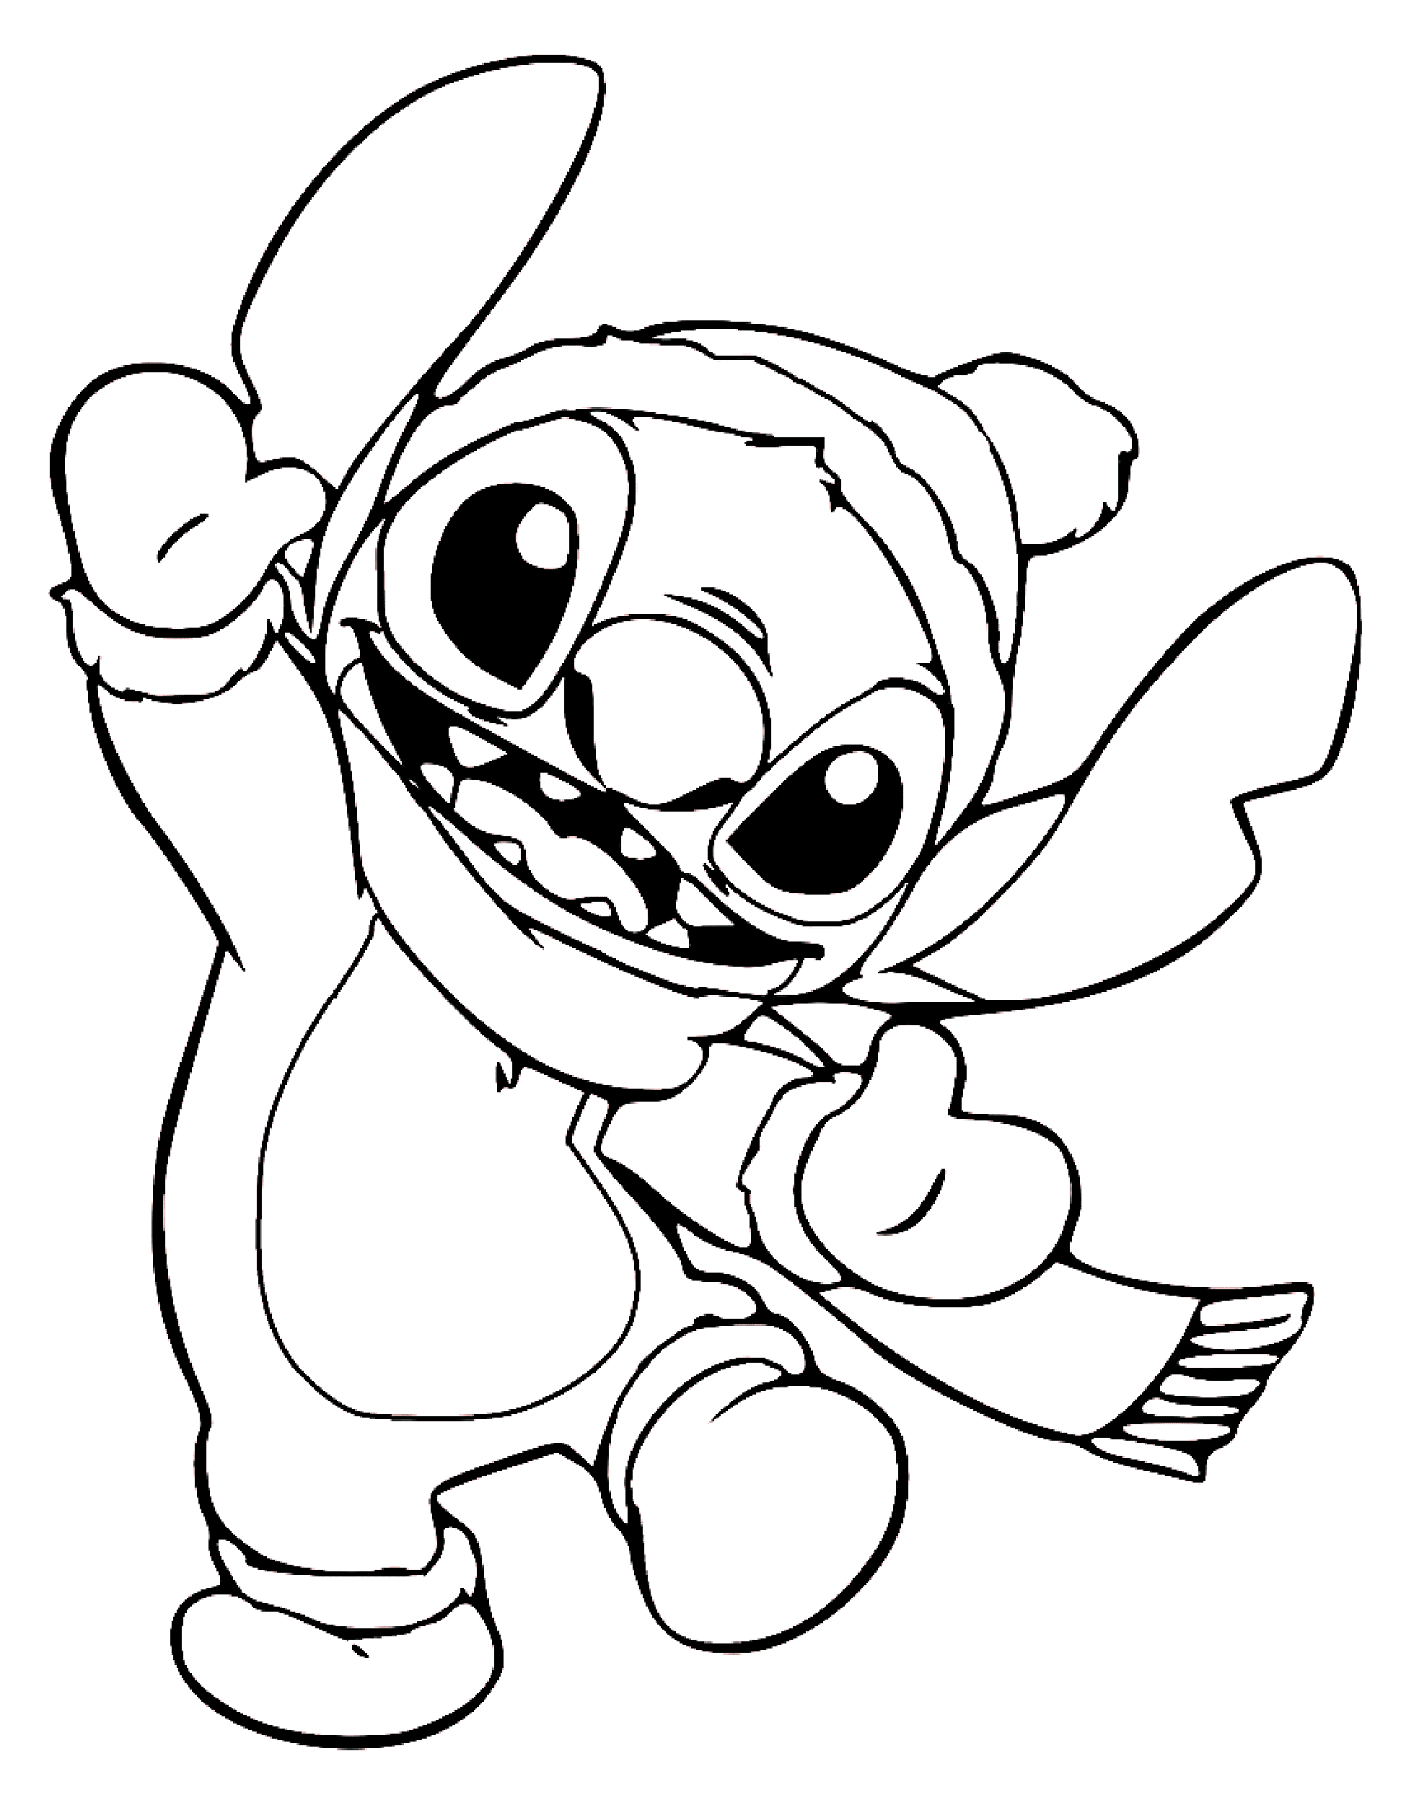 Warm Stitch Coloring Page